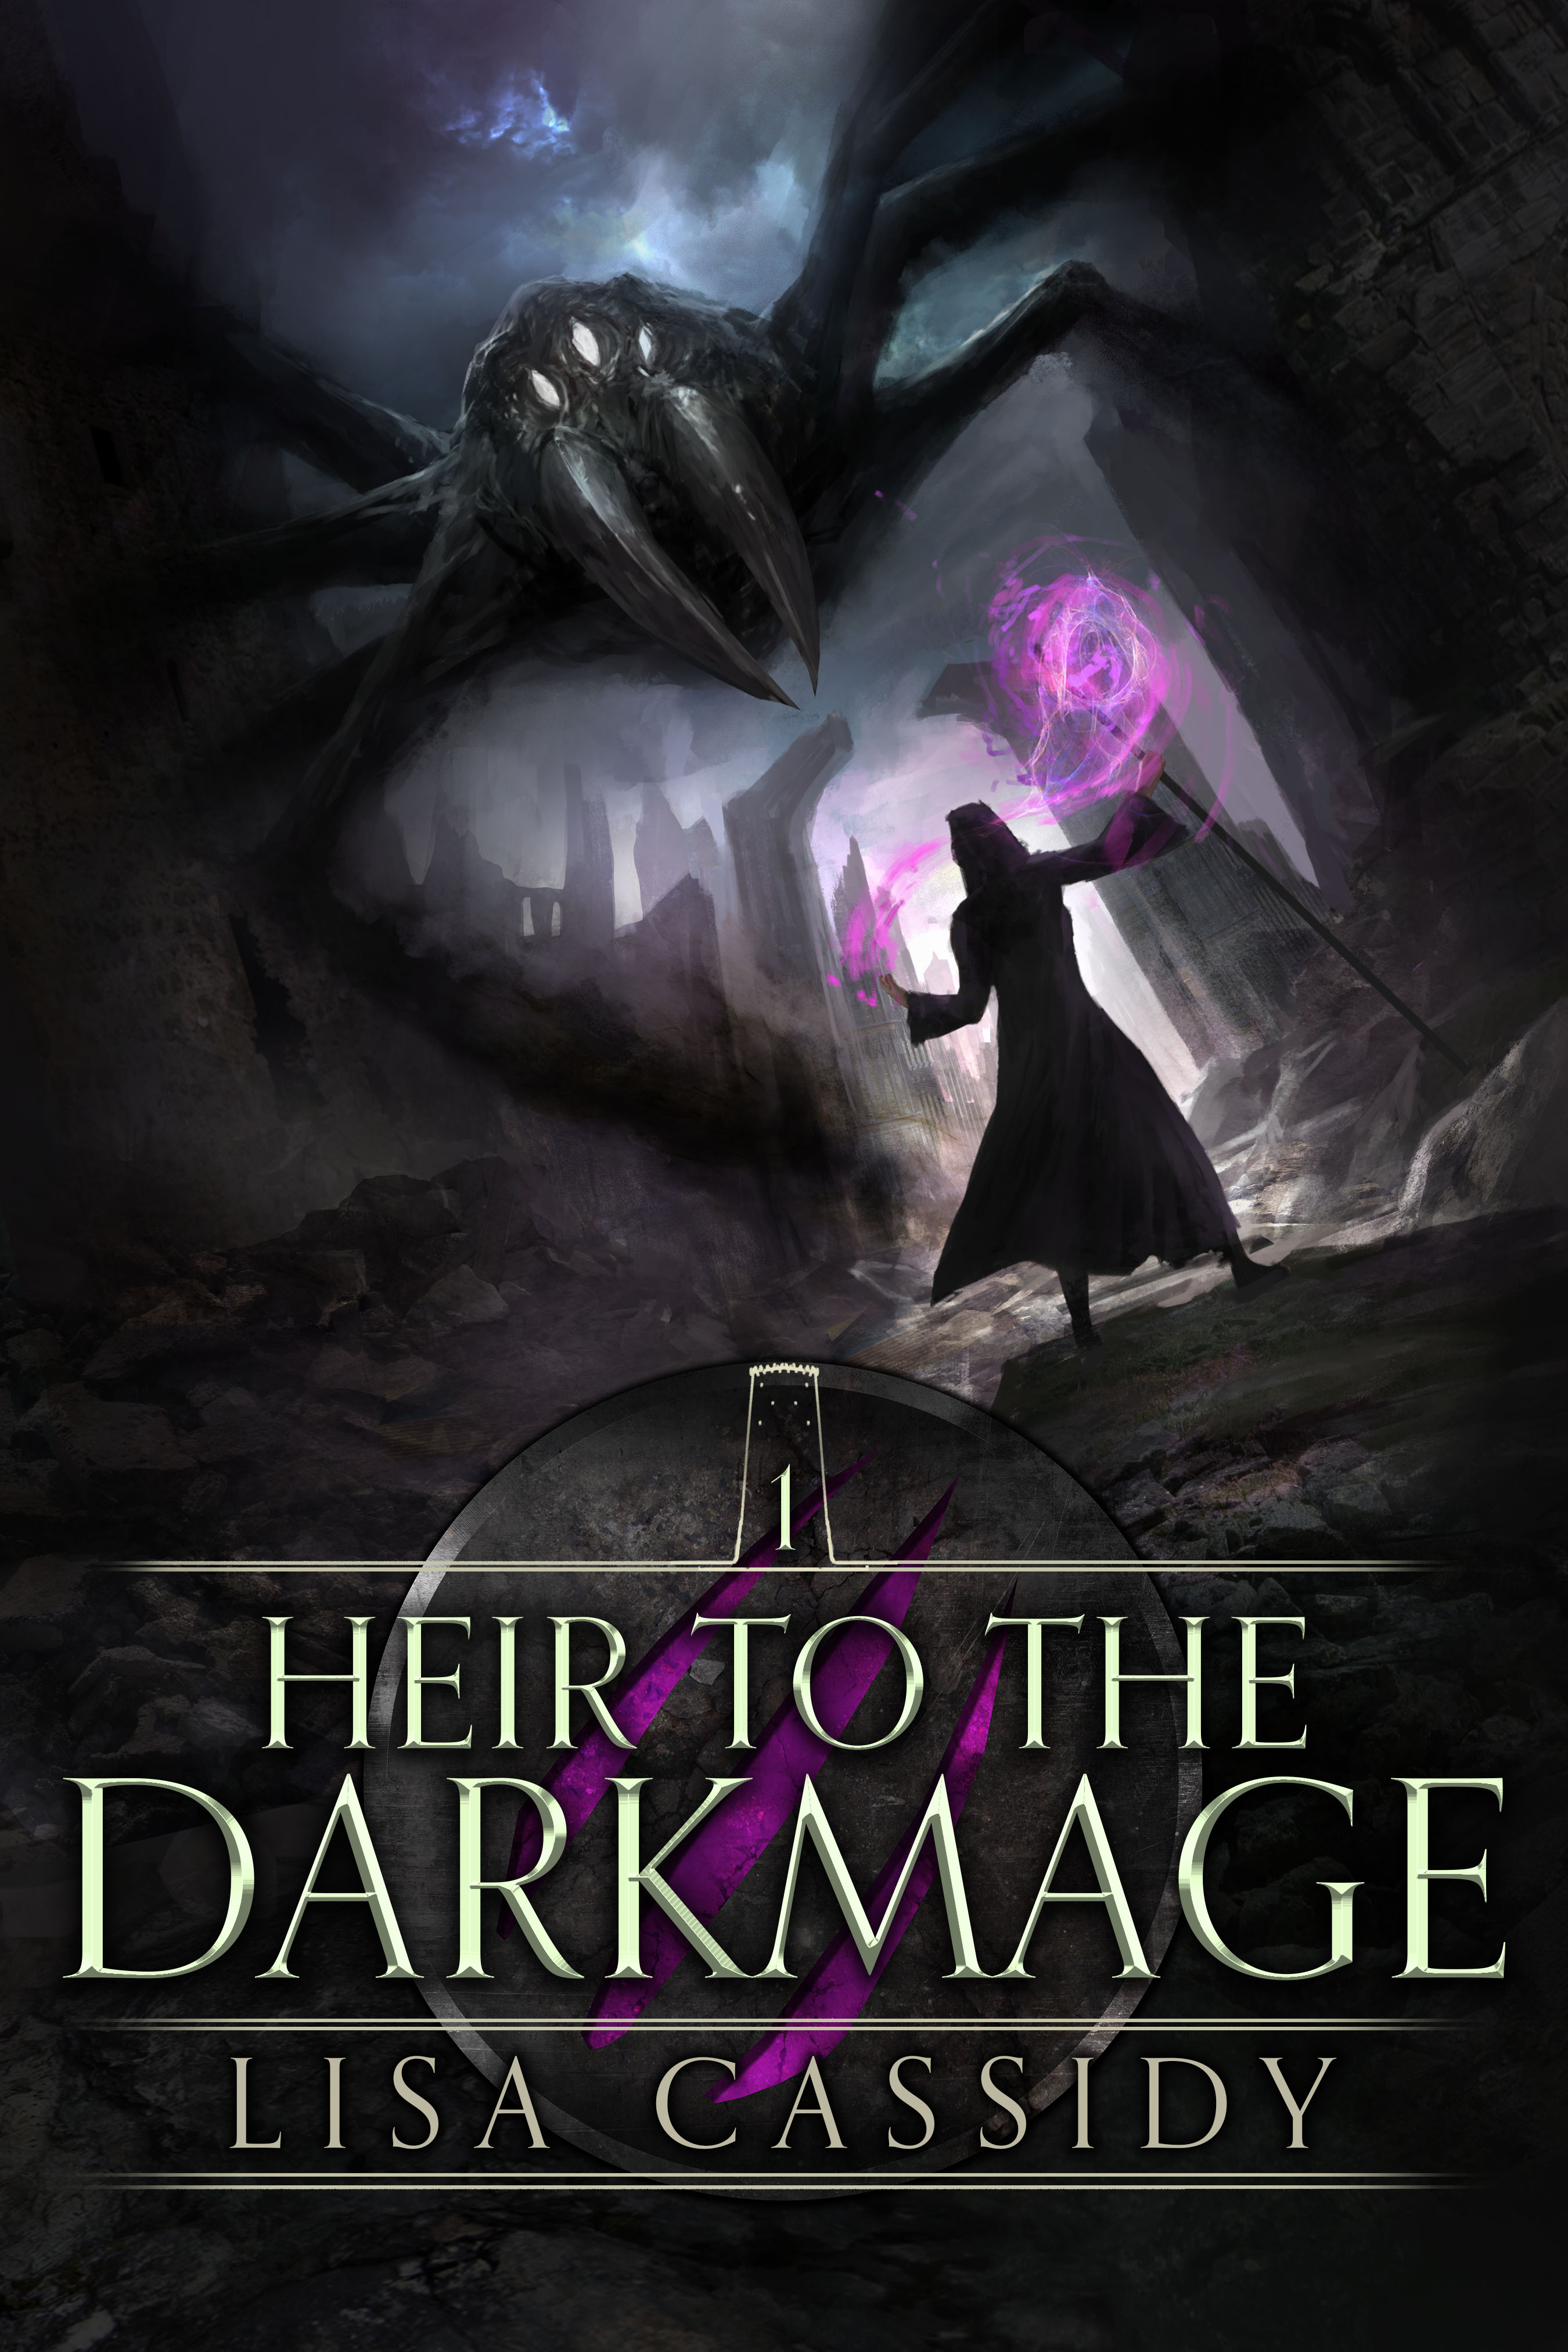 Book Launch - Heir to the Darkmage by Lisa Cassidy